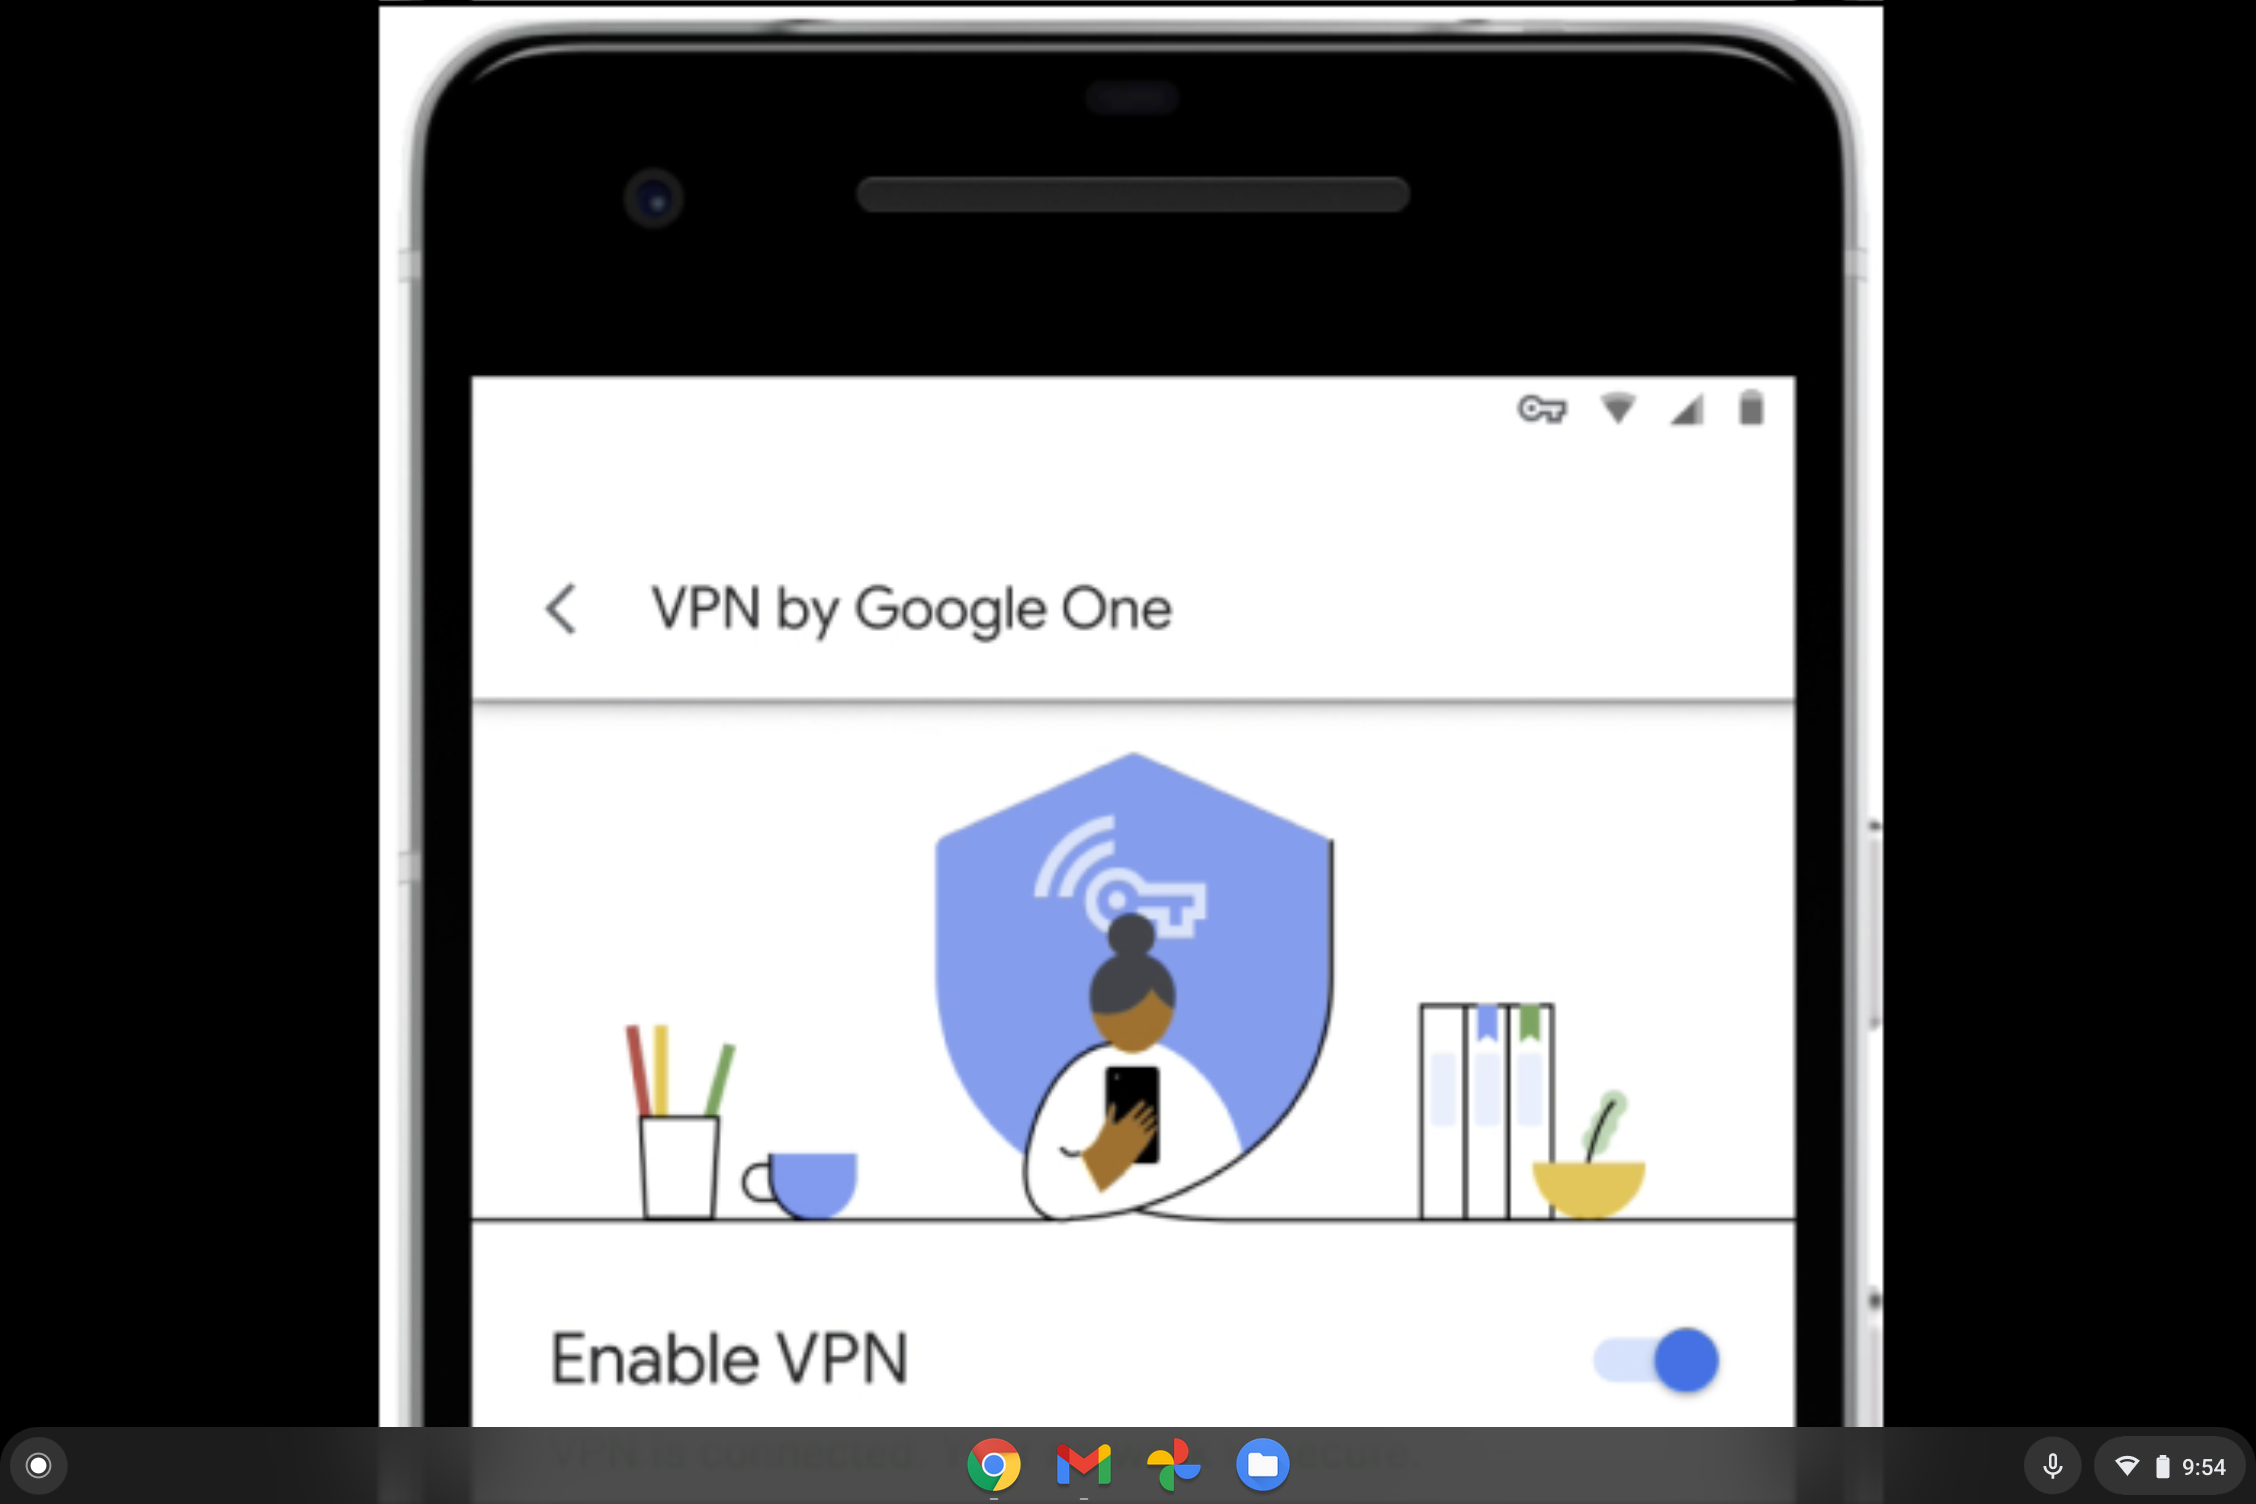 The new VPN by Google One is coming to Chromebooks - About Chromebooks